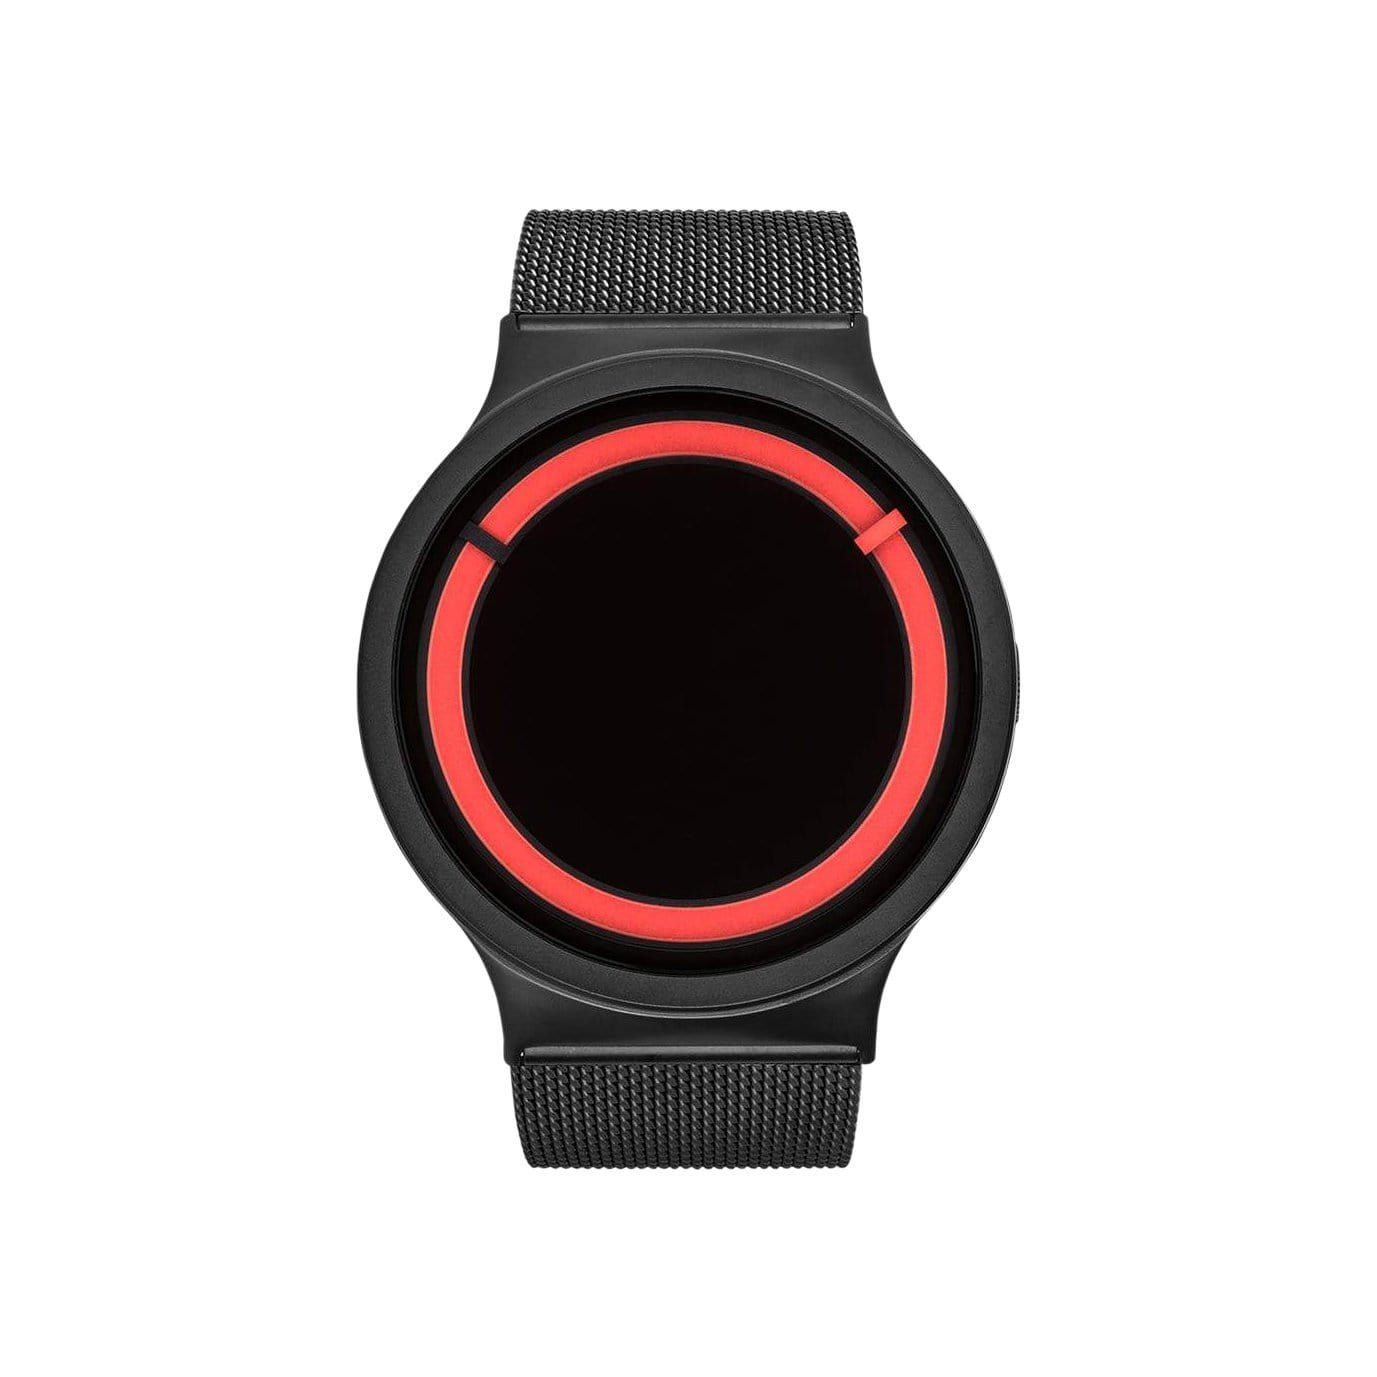 Eclipse Stainless Steel Watch in Black/Red